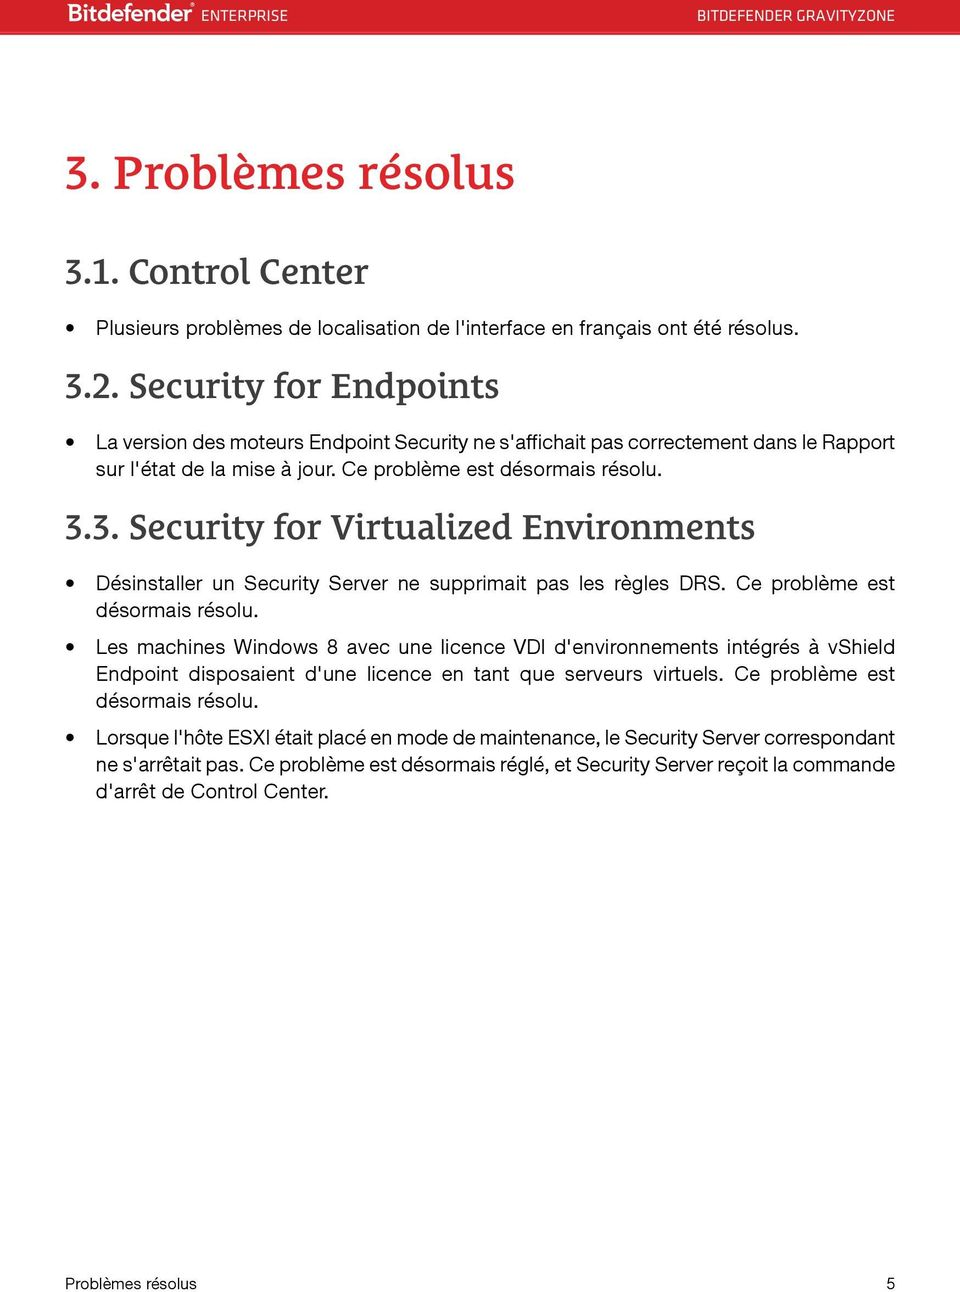 3. Security for Virtualized Environments Désinstaller un Security Server ne supprimait pas les règles DRS. Ce problème est désormais résolu.